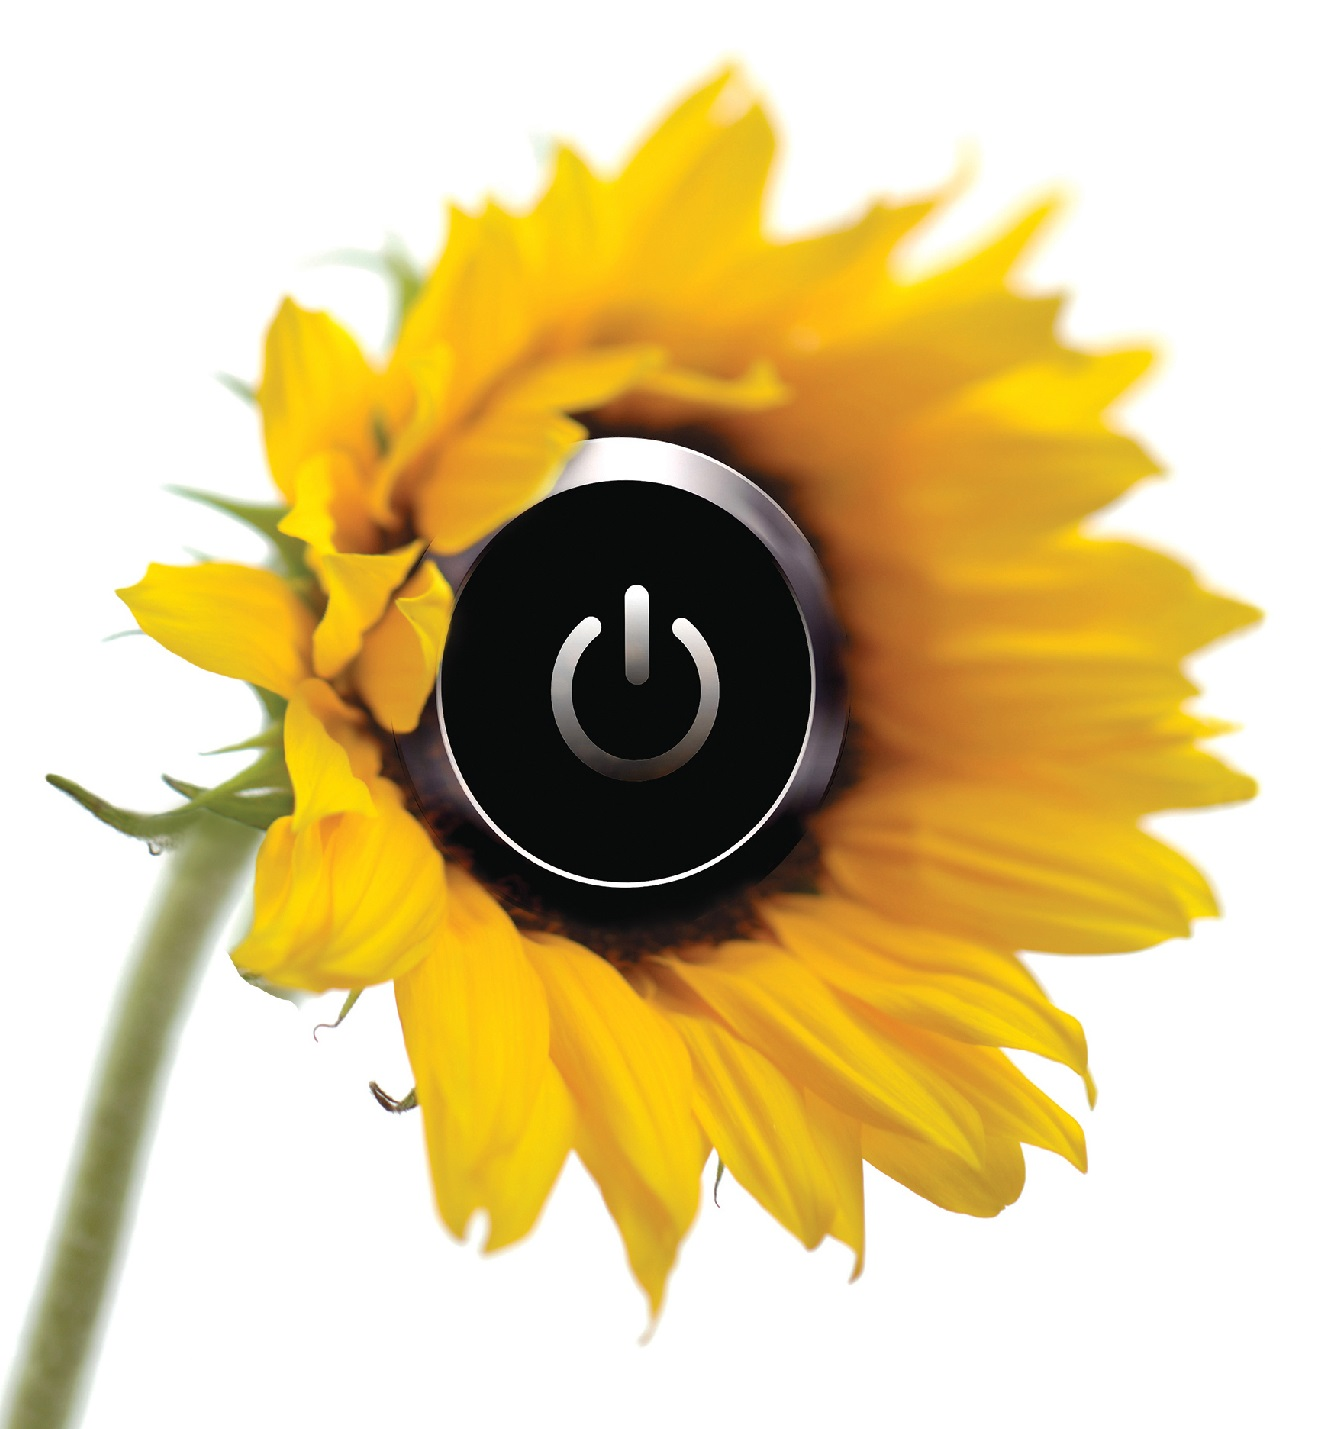 Sunflower with power button